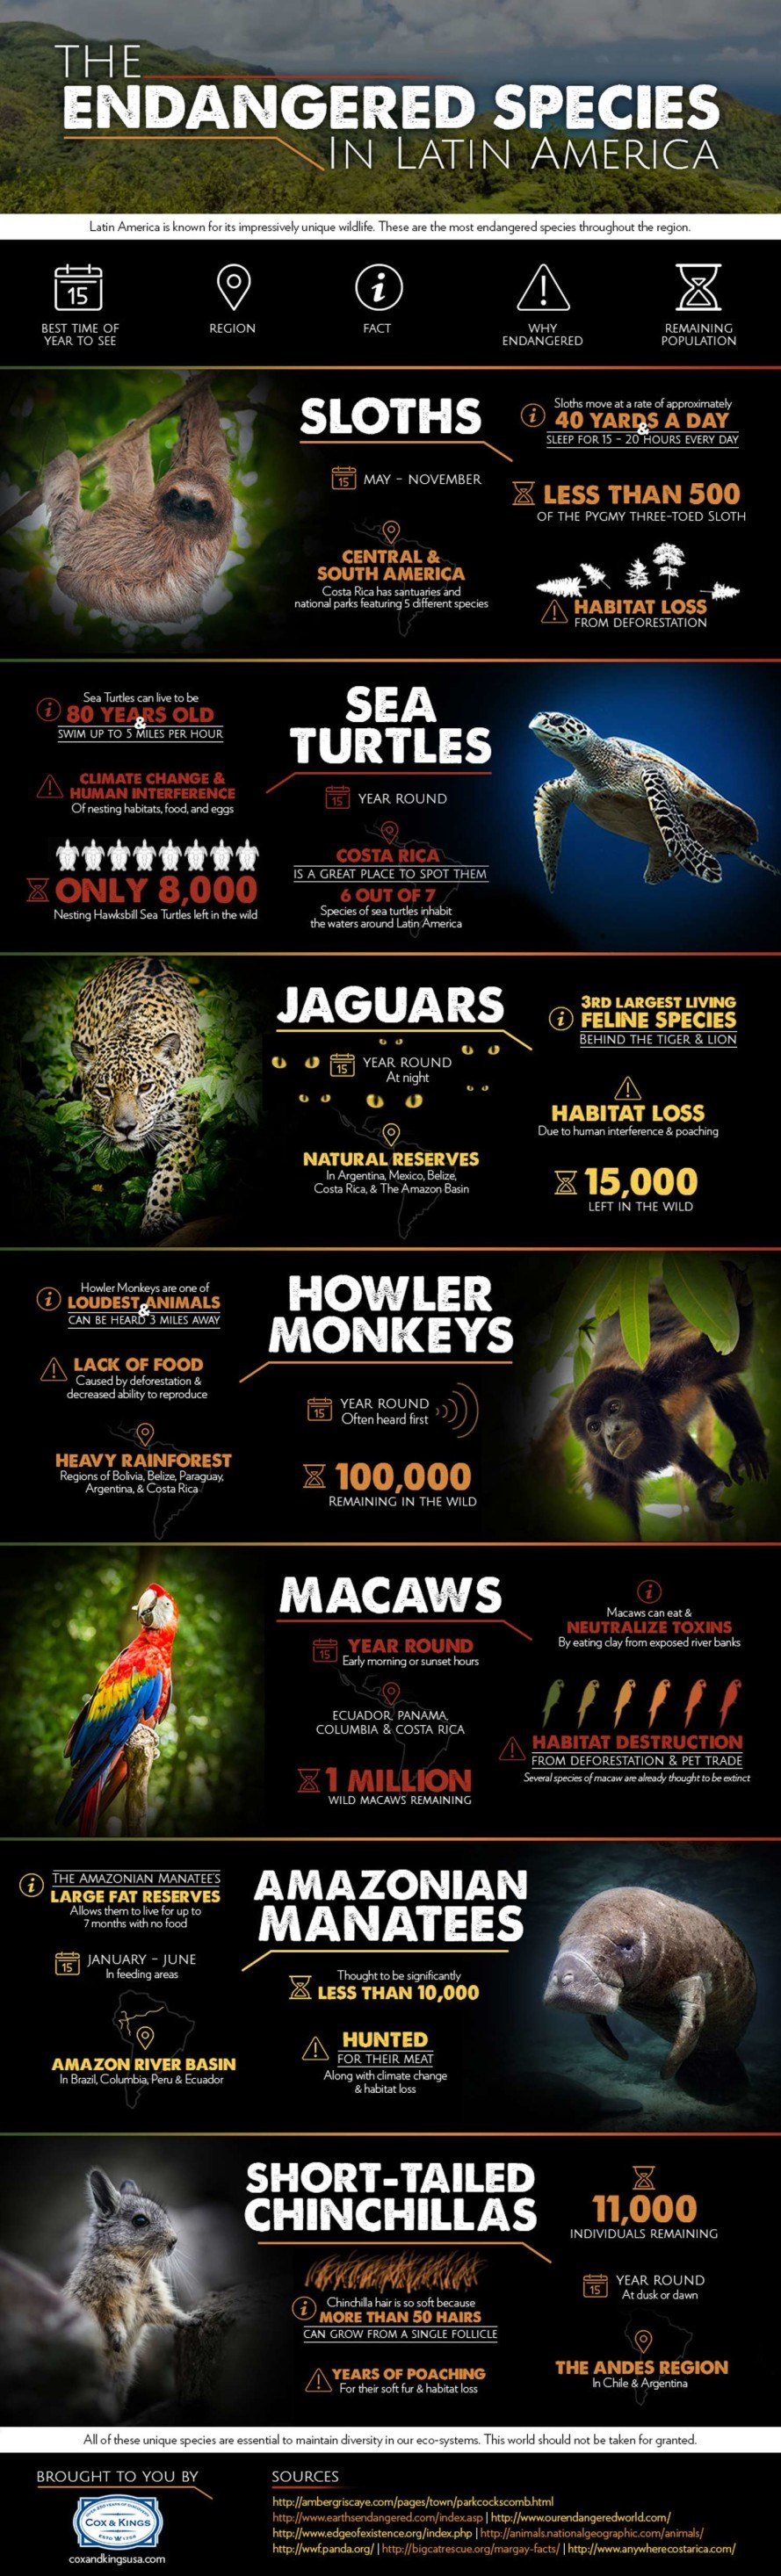 hunting, poaching, hunting endangered animals, habitat destruction, habitat, reader submission, infographic, endangered animals, endangered sloth, south american animals, south american endangered animals, central american endangered animals,